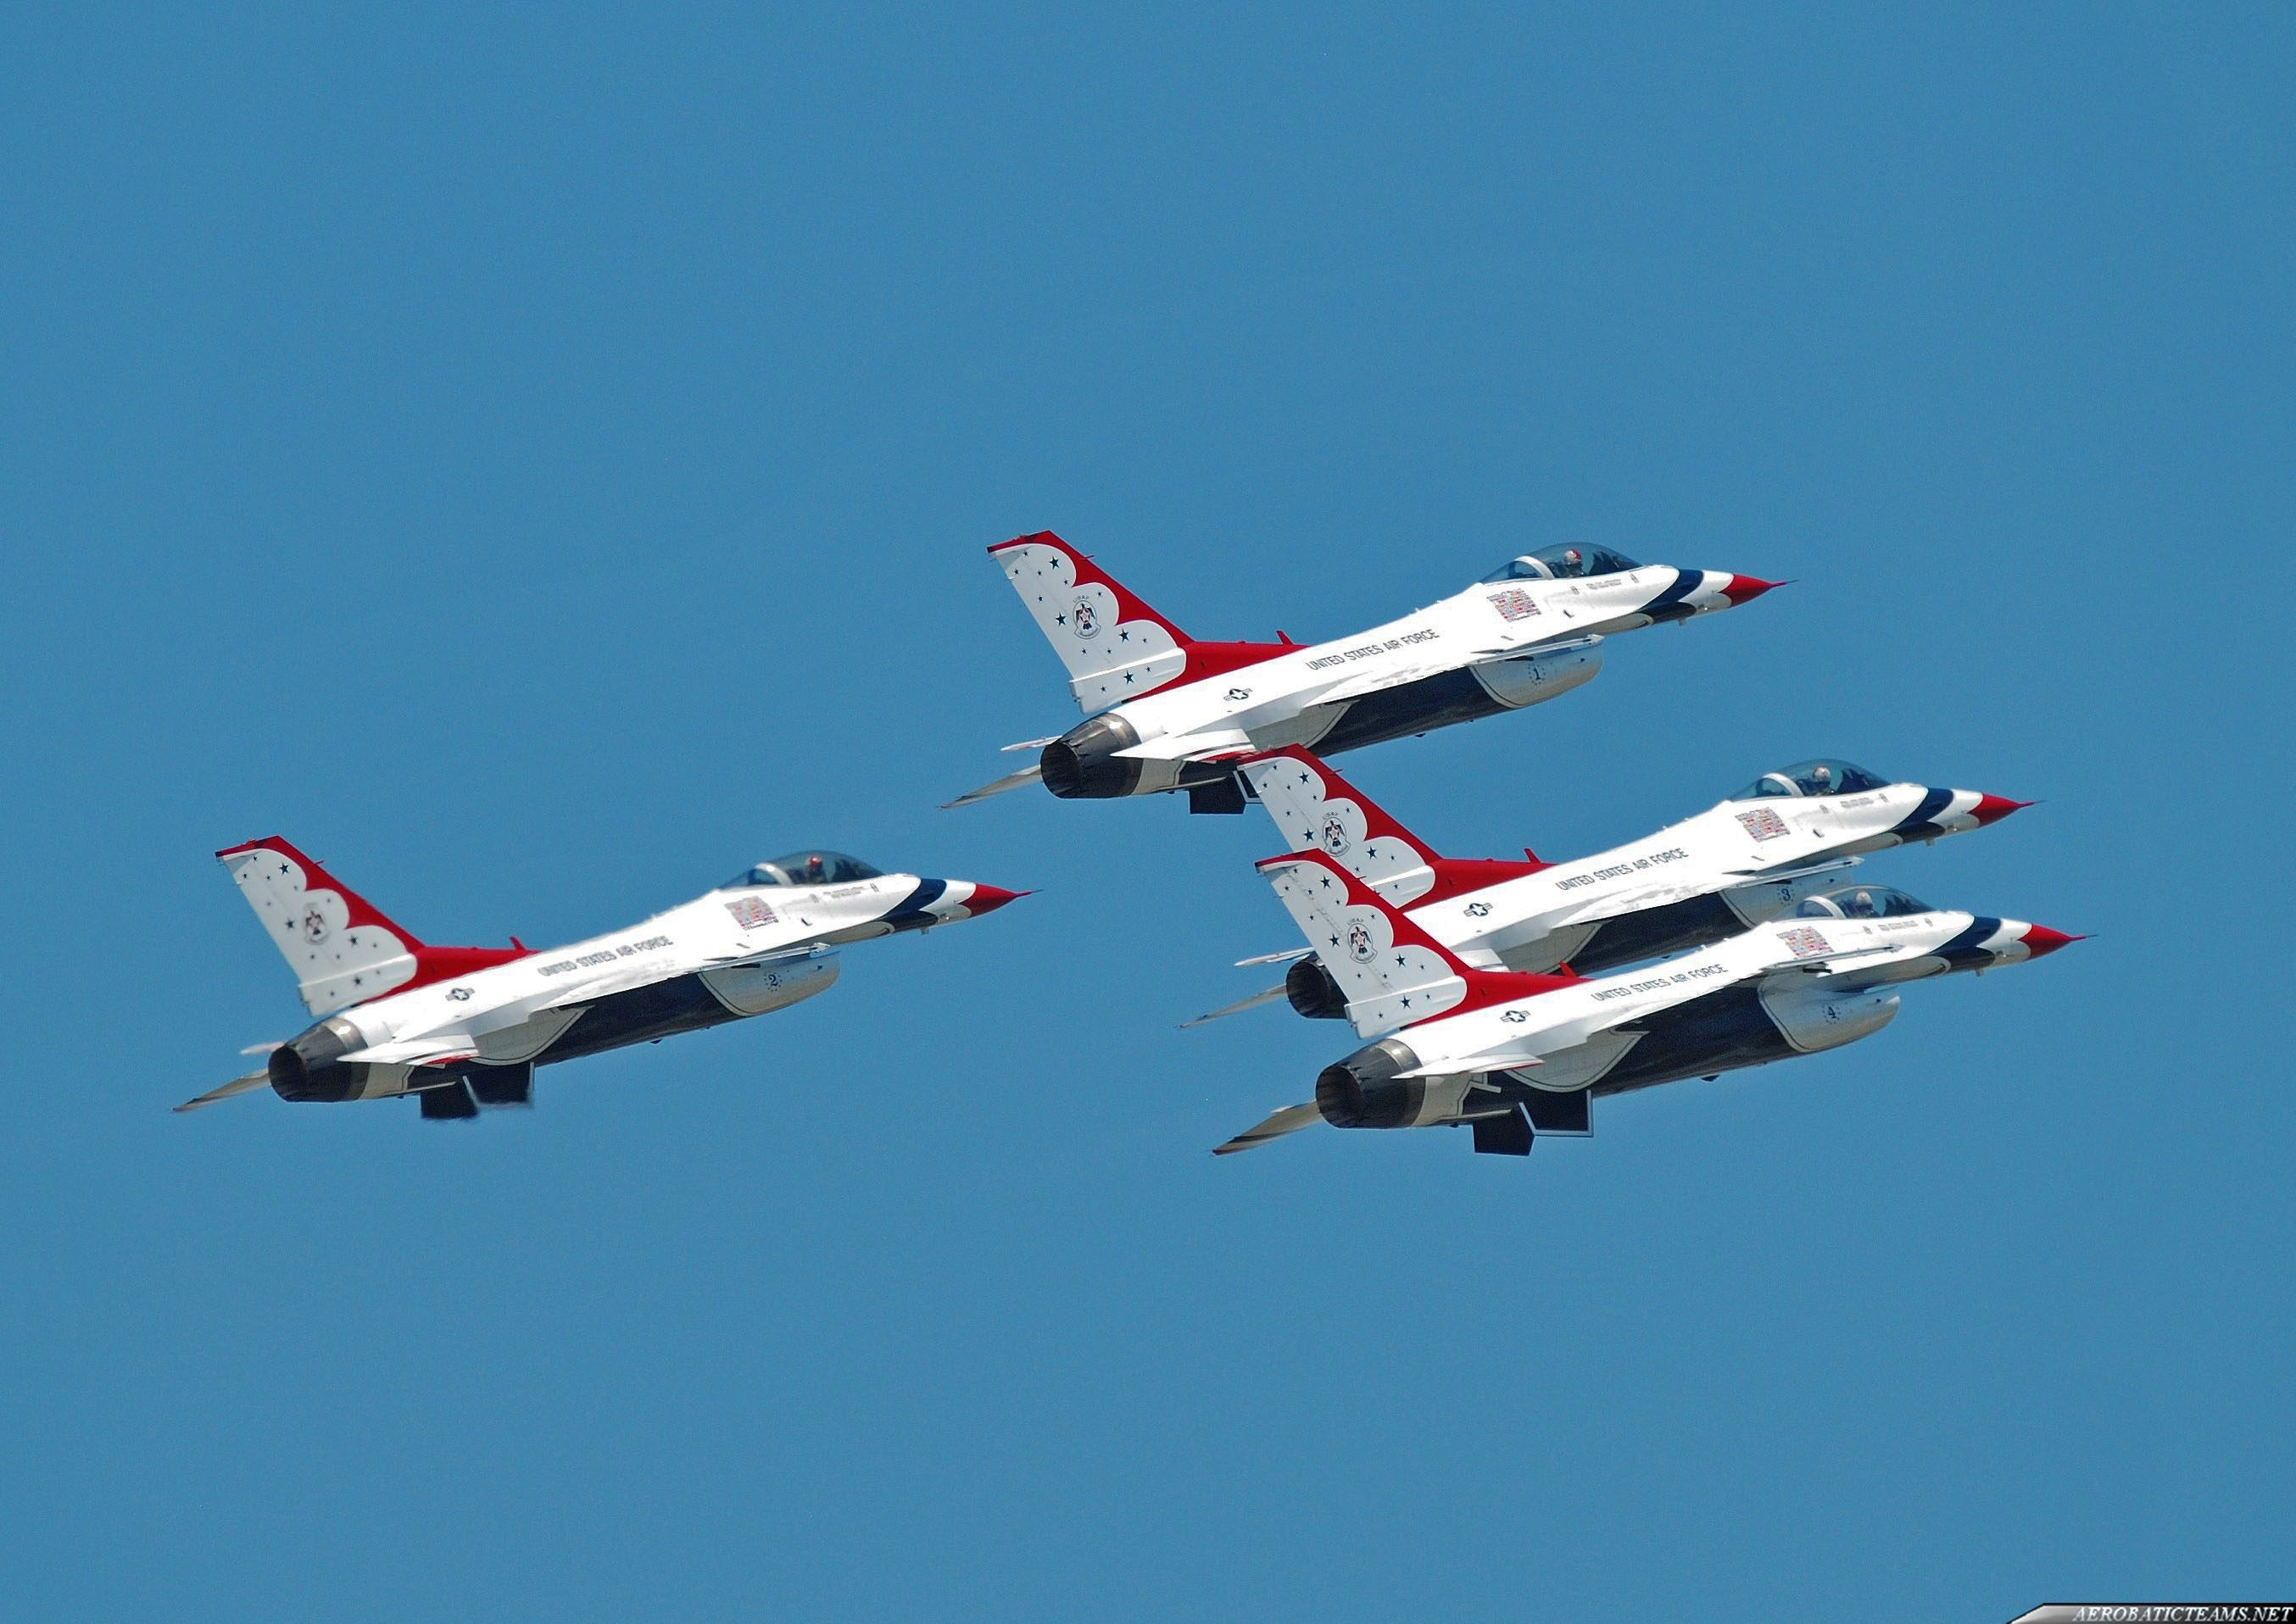 Thunderbirds take off, June 24